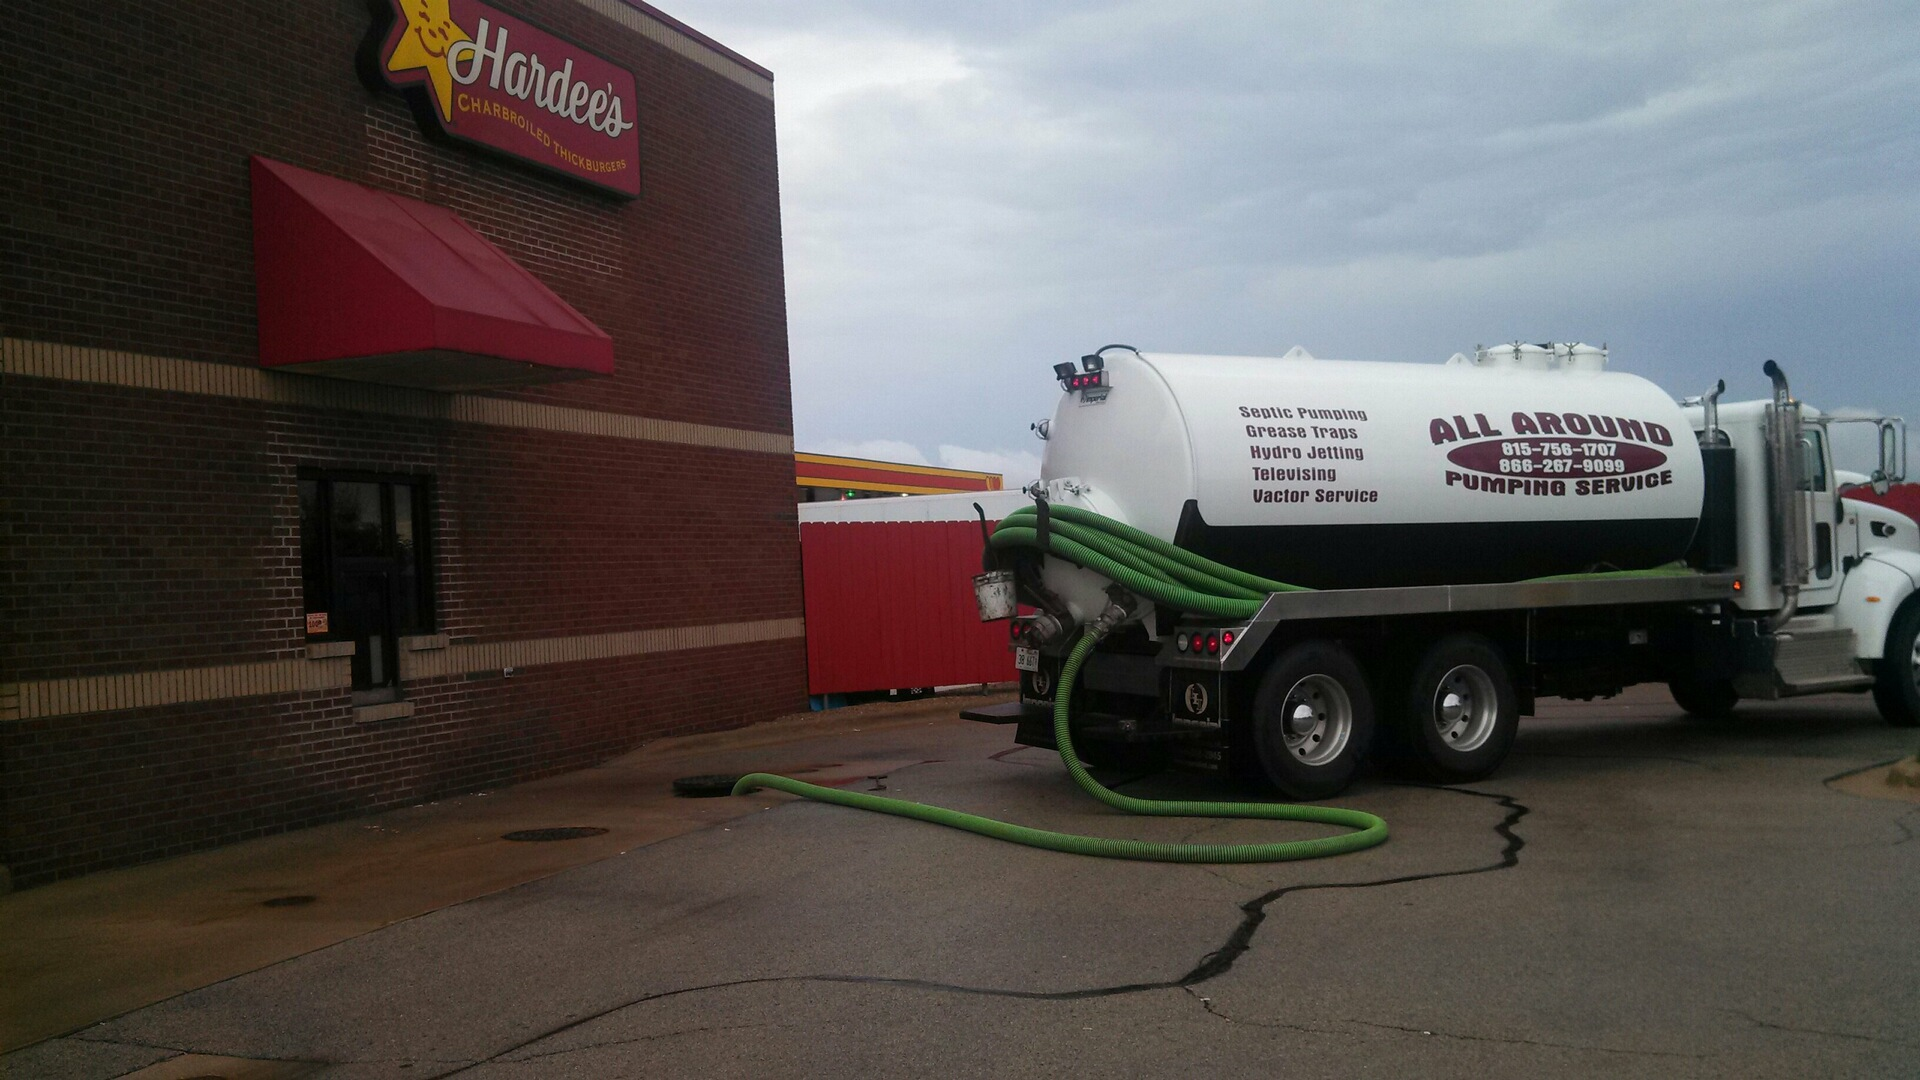 Cleaning Hardees Restaurant Grease Trap